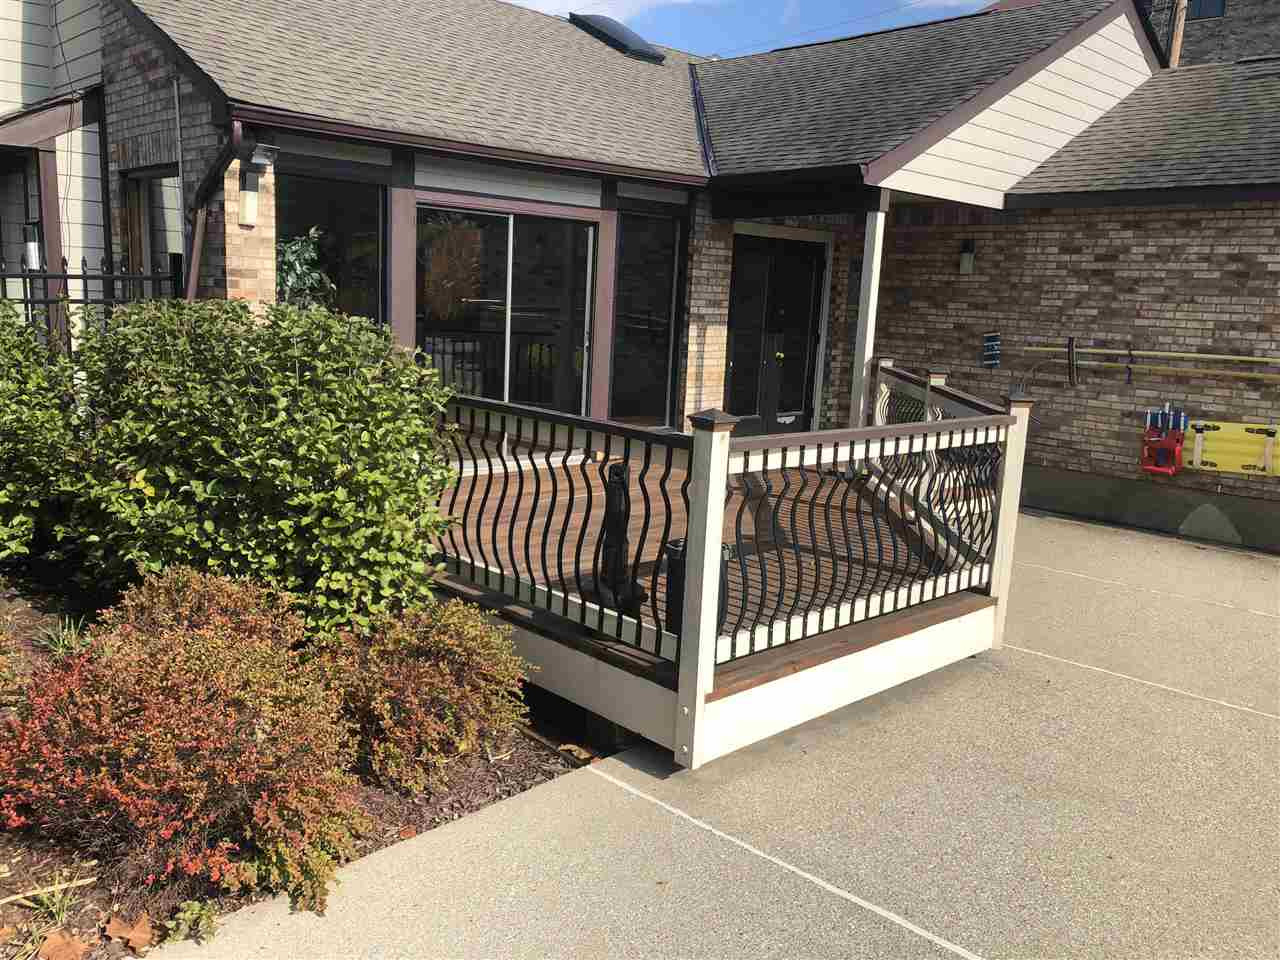 Photo 1 for 50 Woodland Hills Dr, 12 Southgate, KY 41071